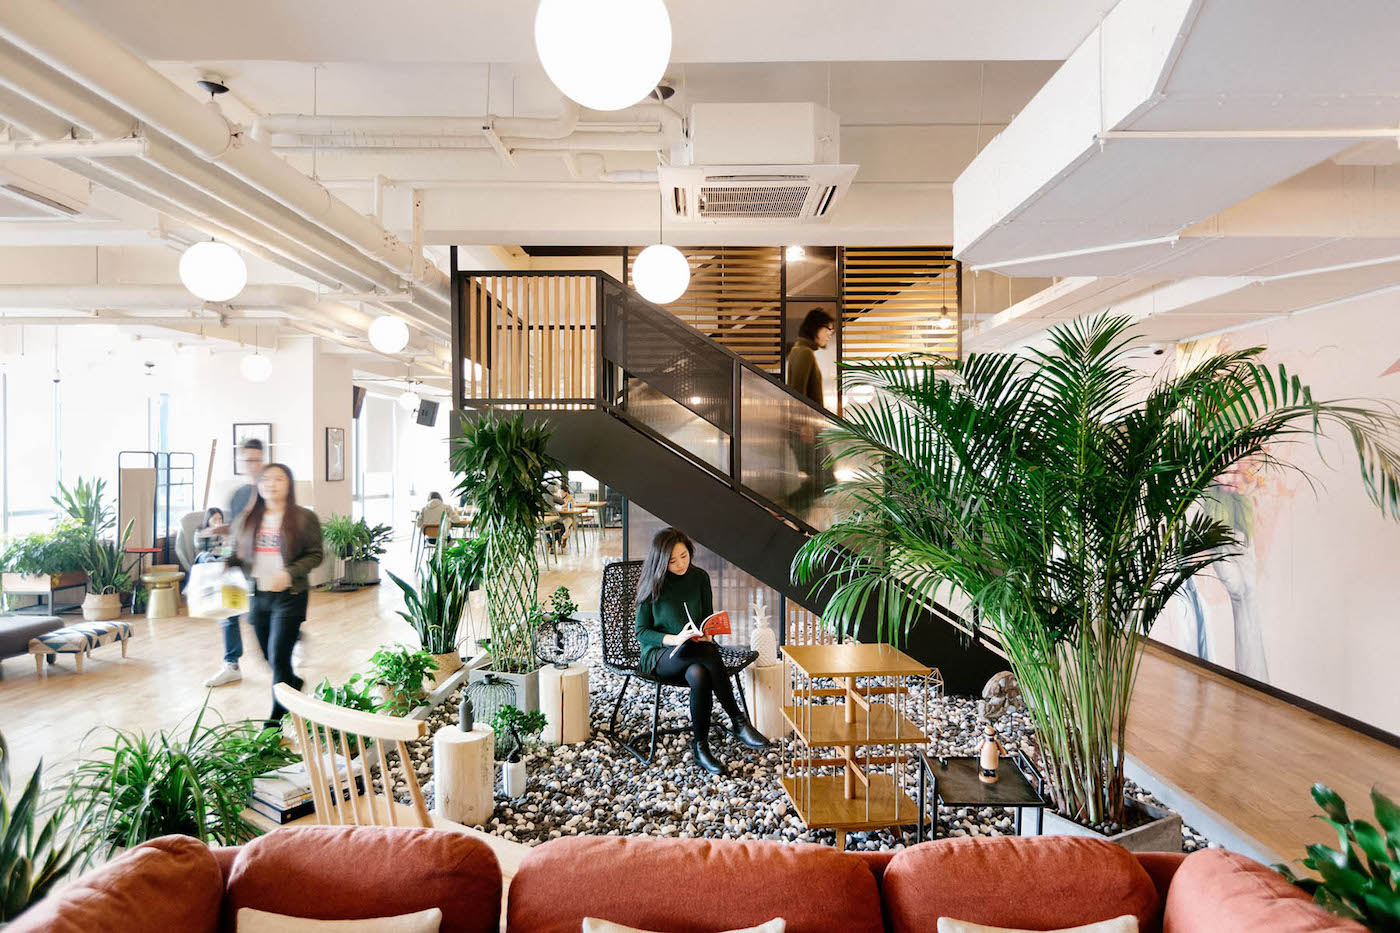 WeWork Ciyunsi in Beijing, China. Photograph by The We Company